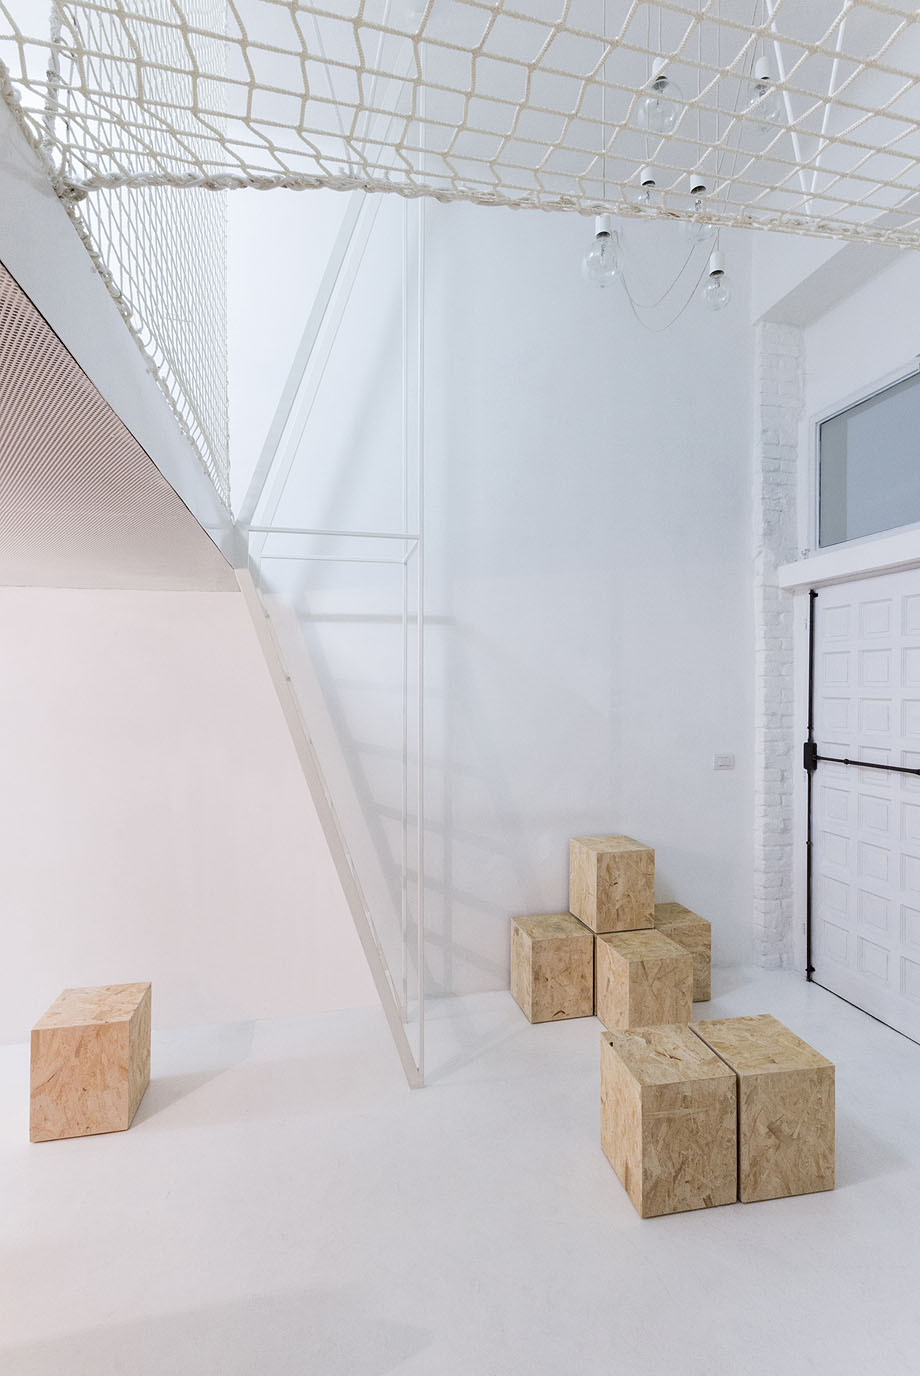 stairs officina dell'architettura (2)